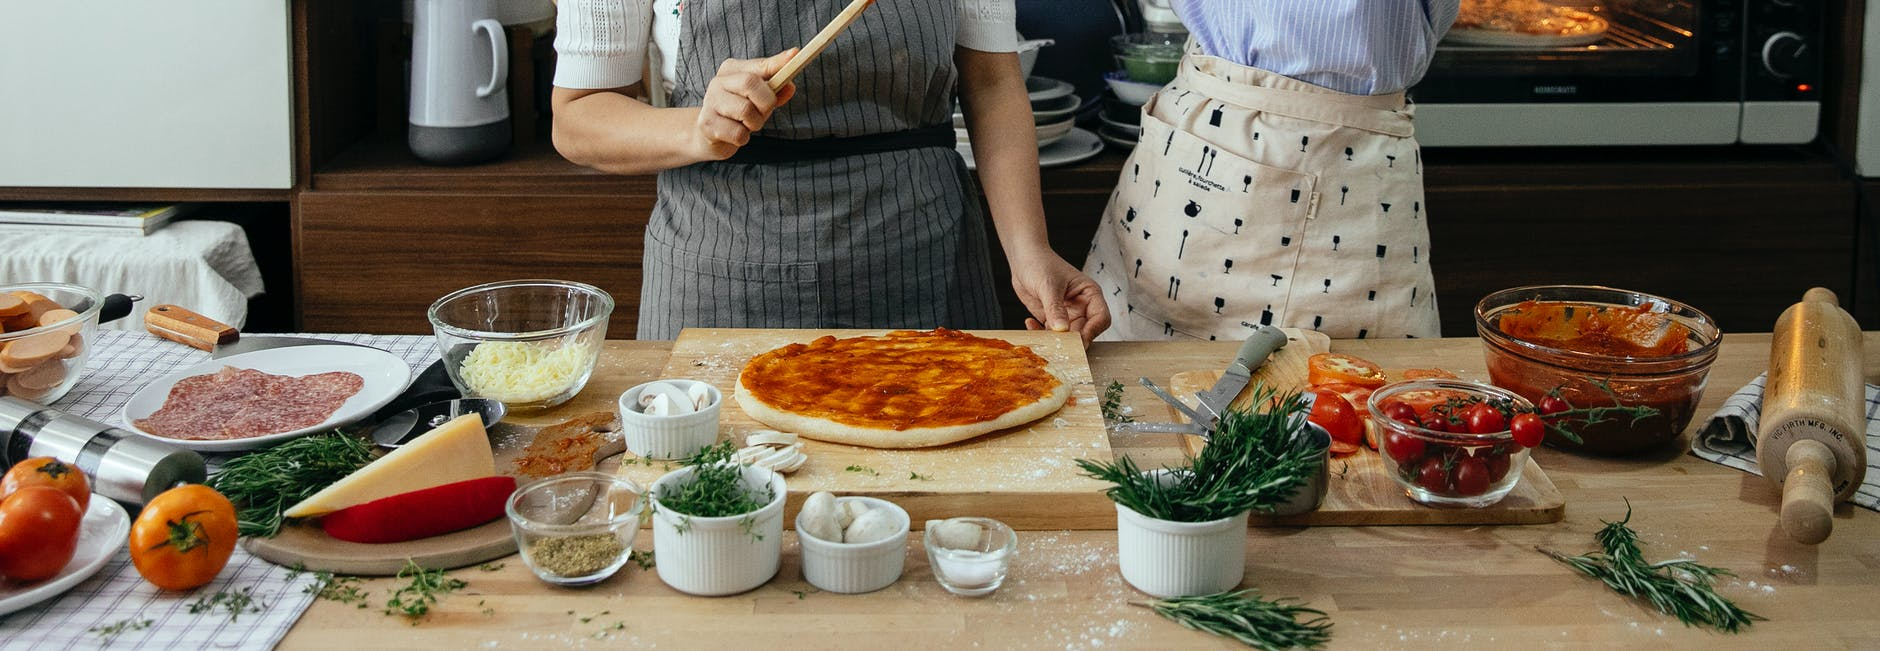 two people spreading red sauce on pizza dough